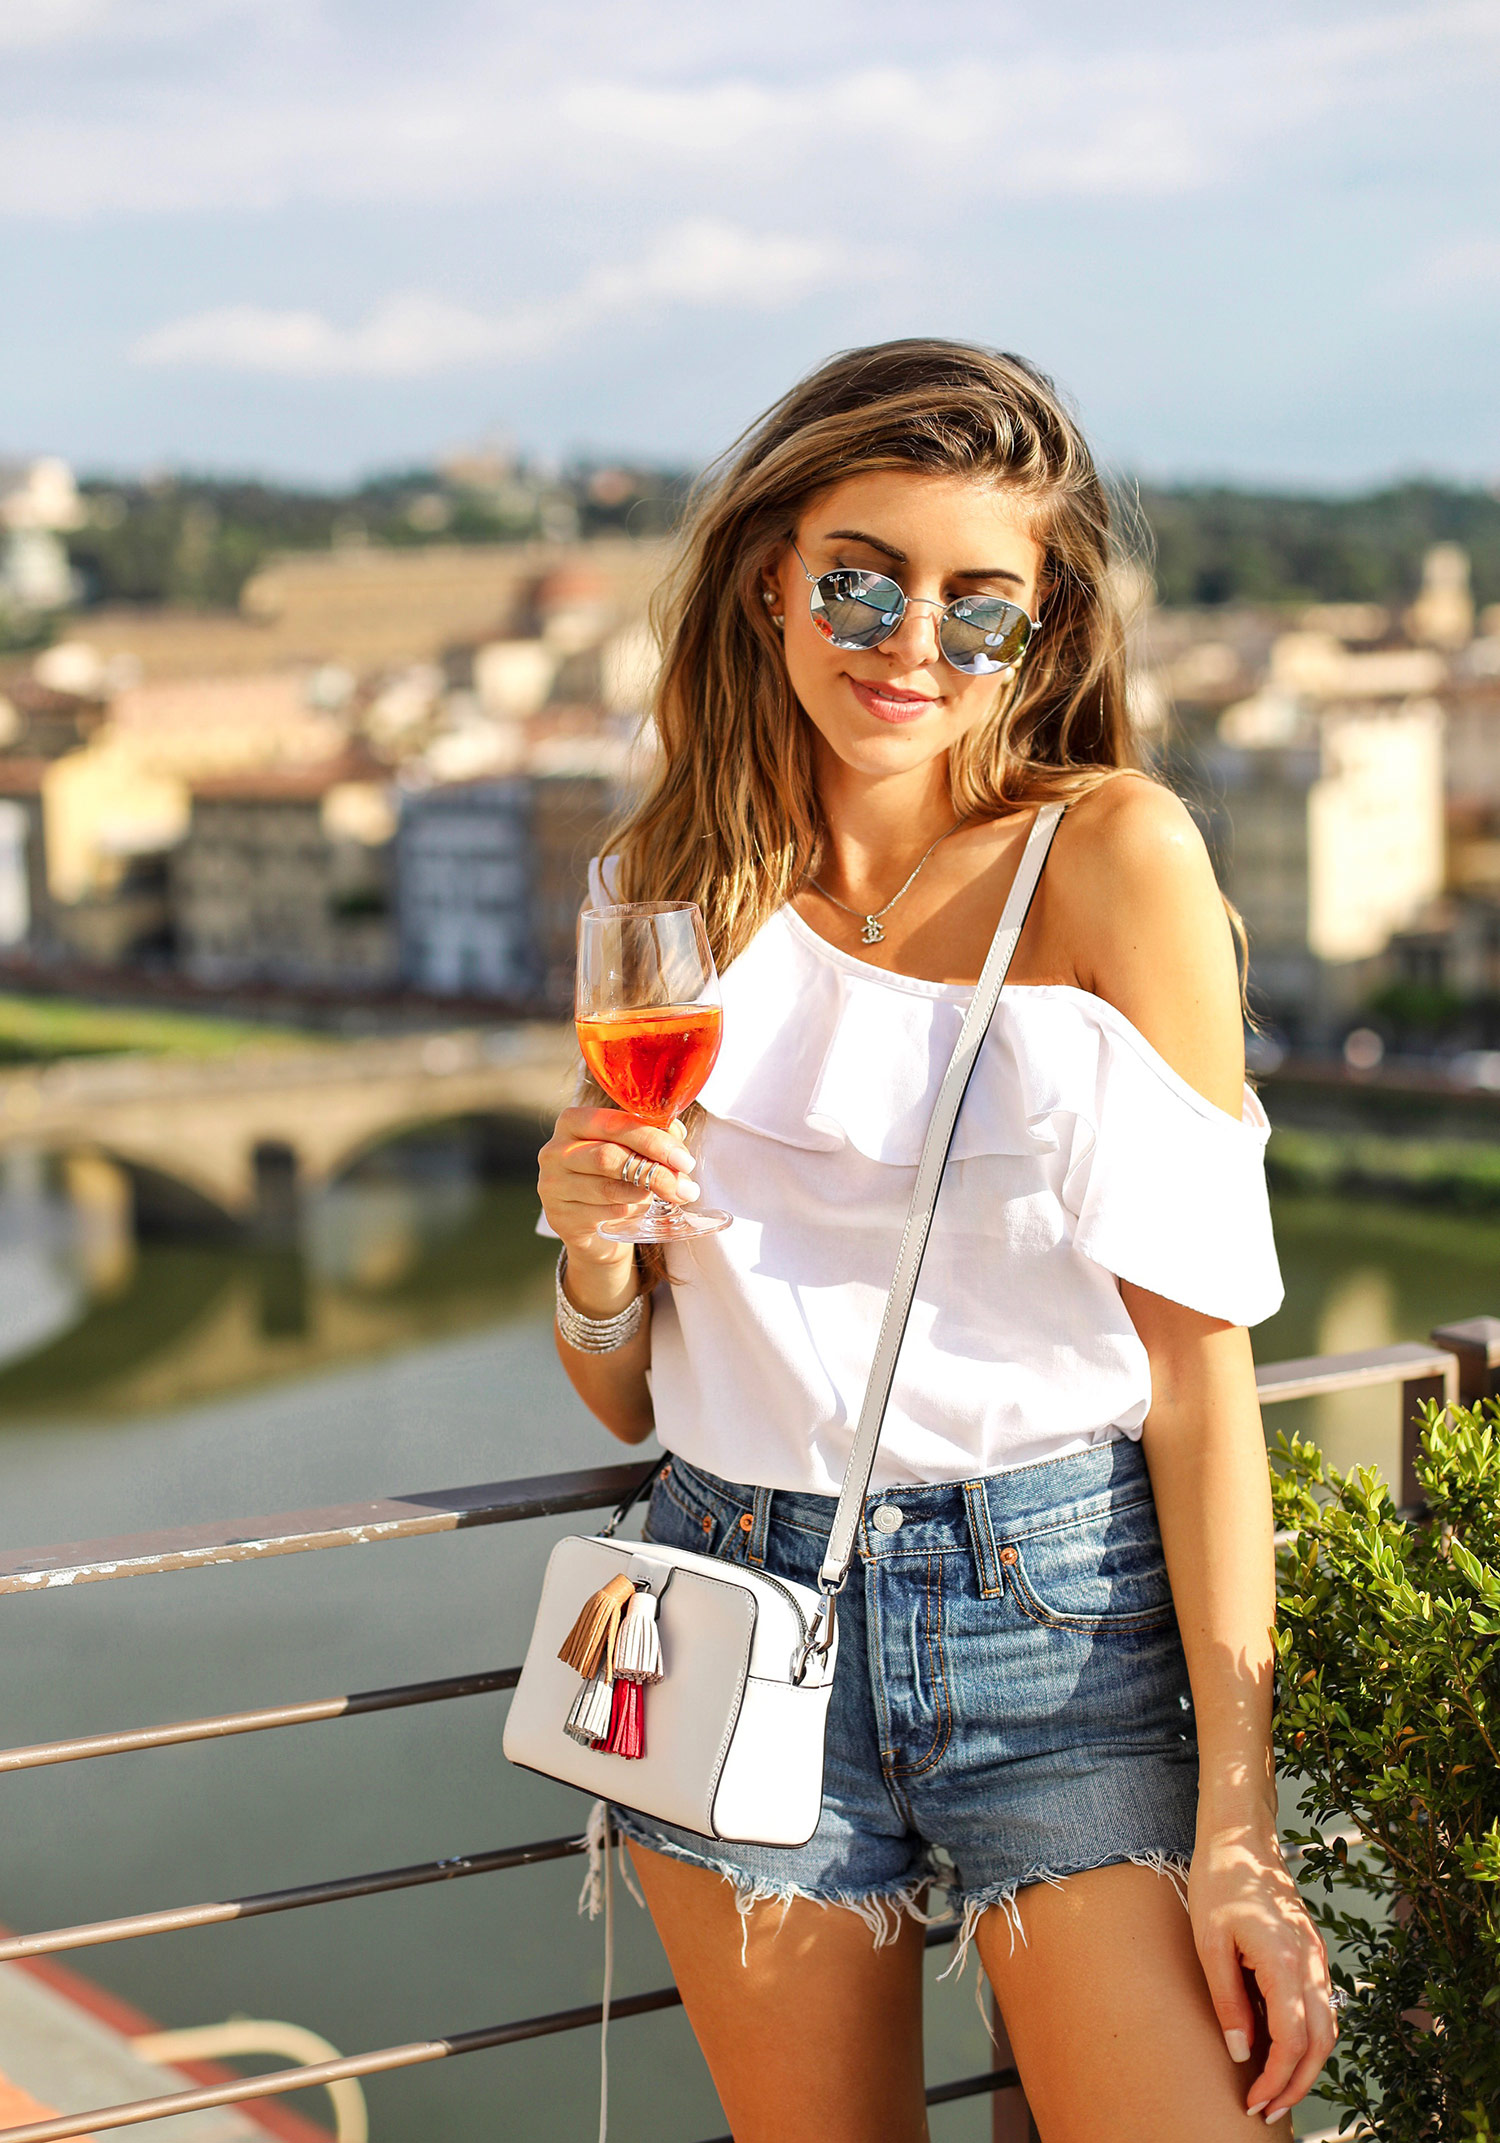 Fashion and lifestyle blogger Adelina Perrin of The Charming Olive wearing Madewell Top, Levis Shorts, and Rebecca Minkoff bag